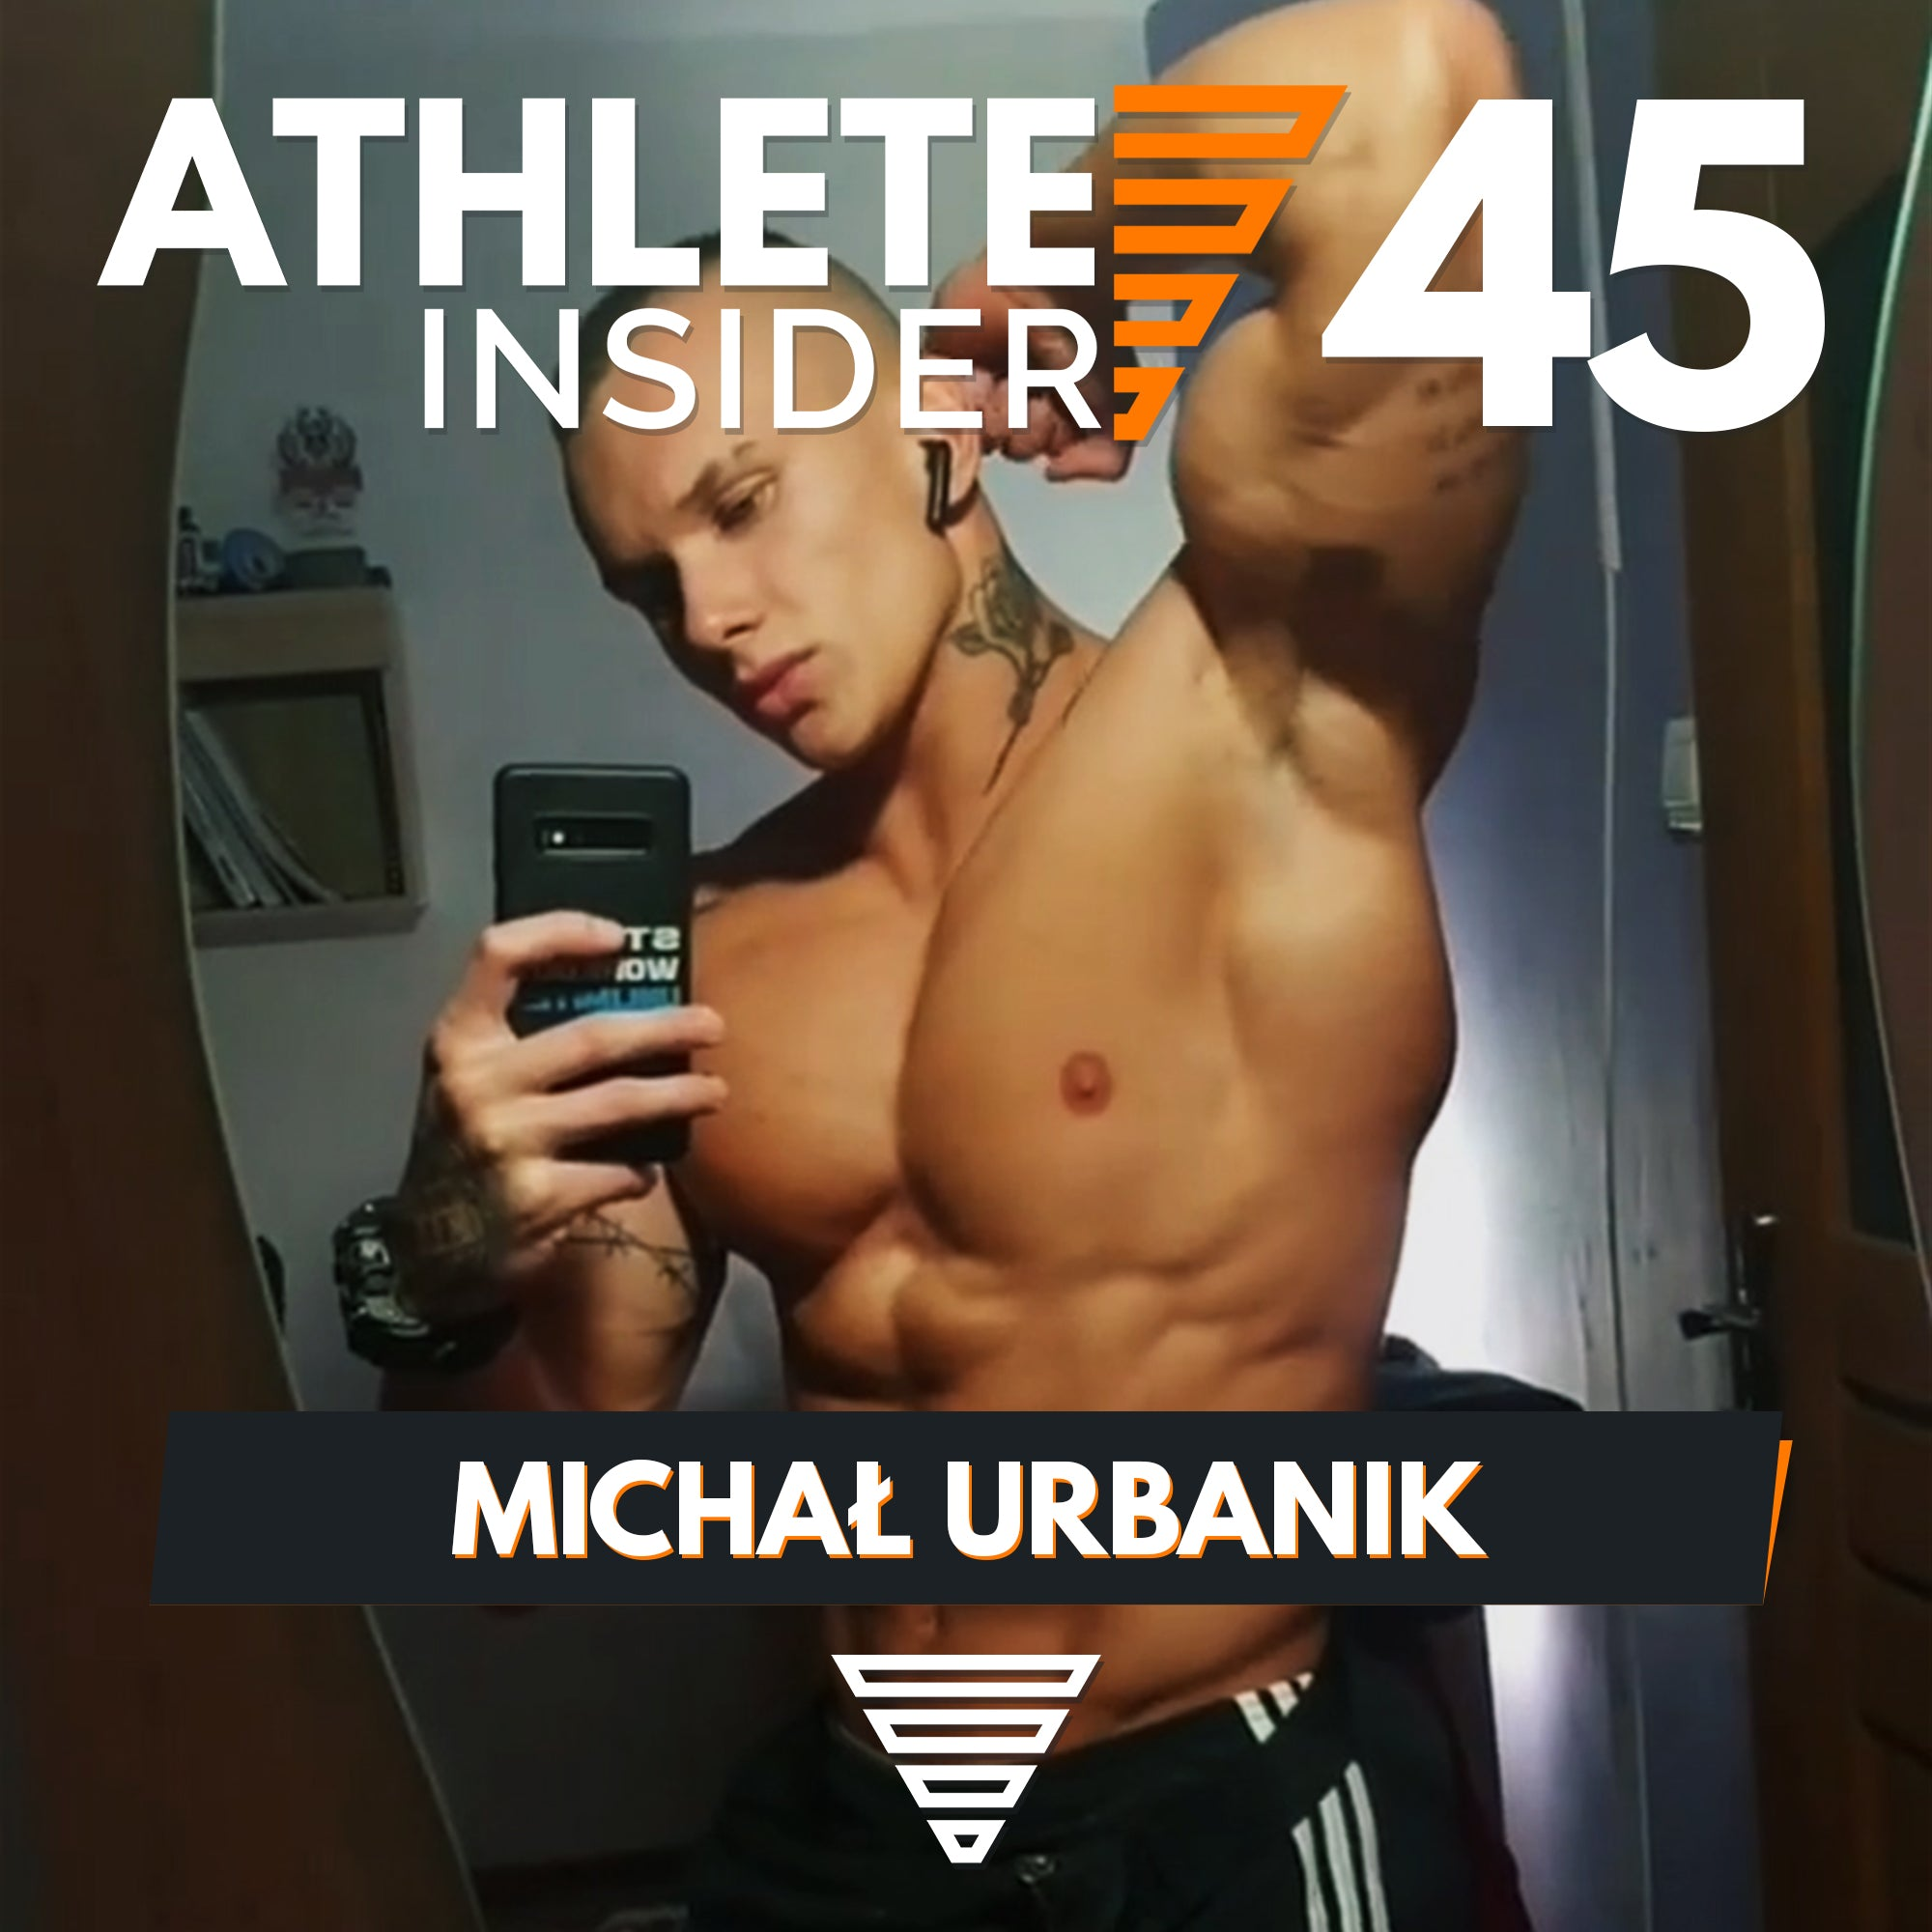 MICHAŁ URBANIK | World Records, Statics & Reps | Interview | The Athlete Insider Podcast #45